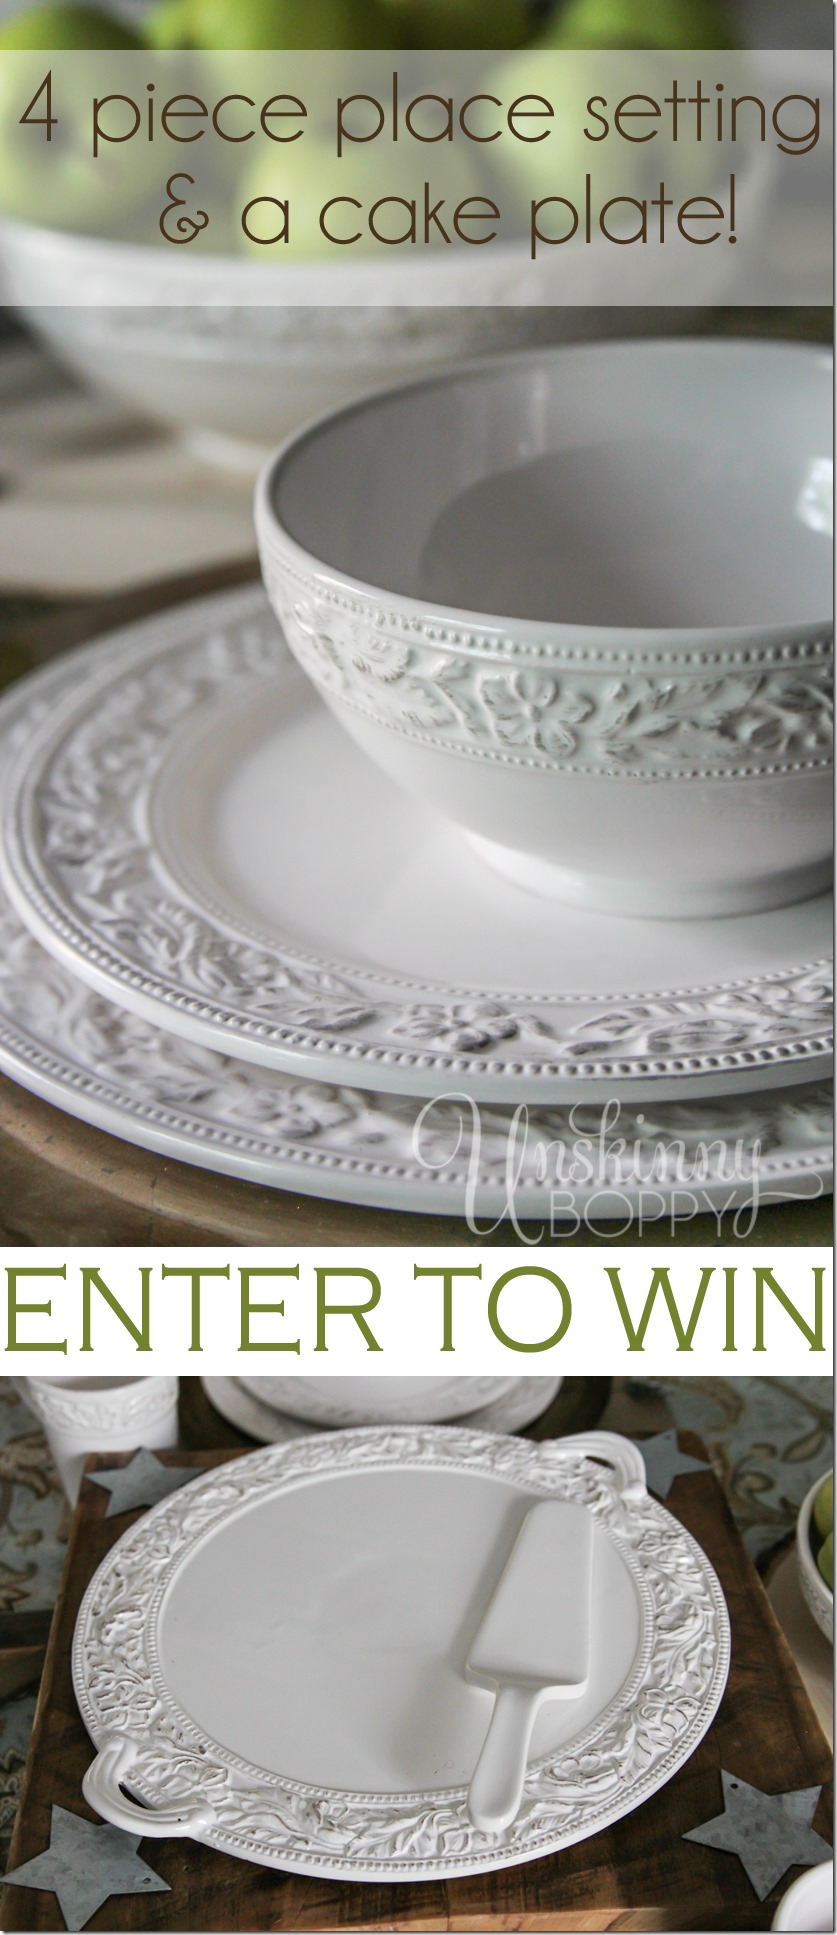 Win new dishes from Pfaltzgraff!